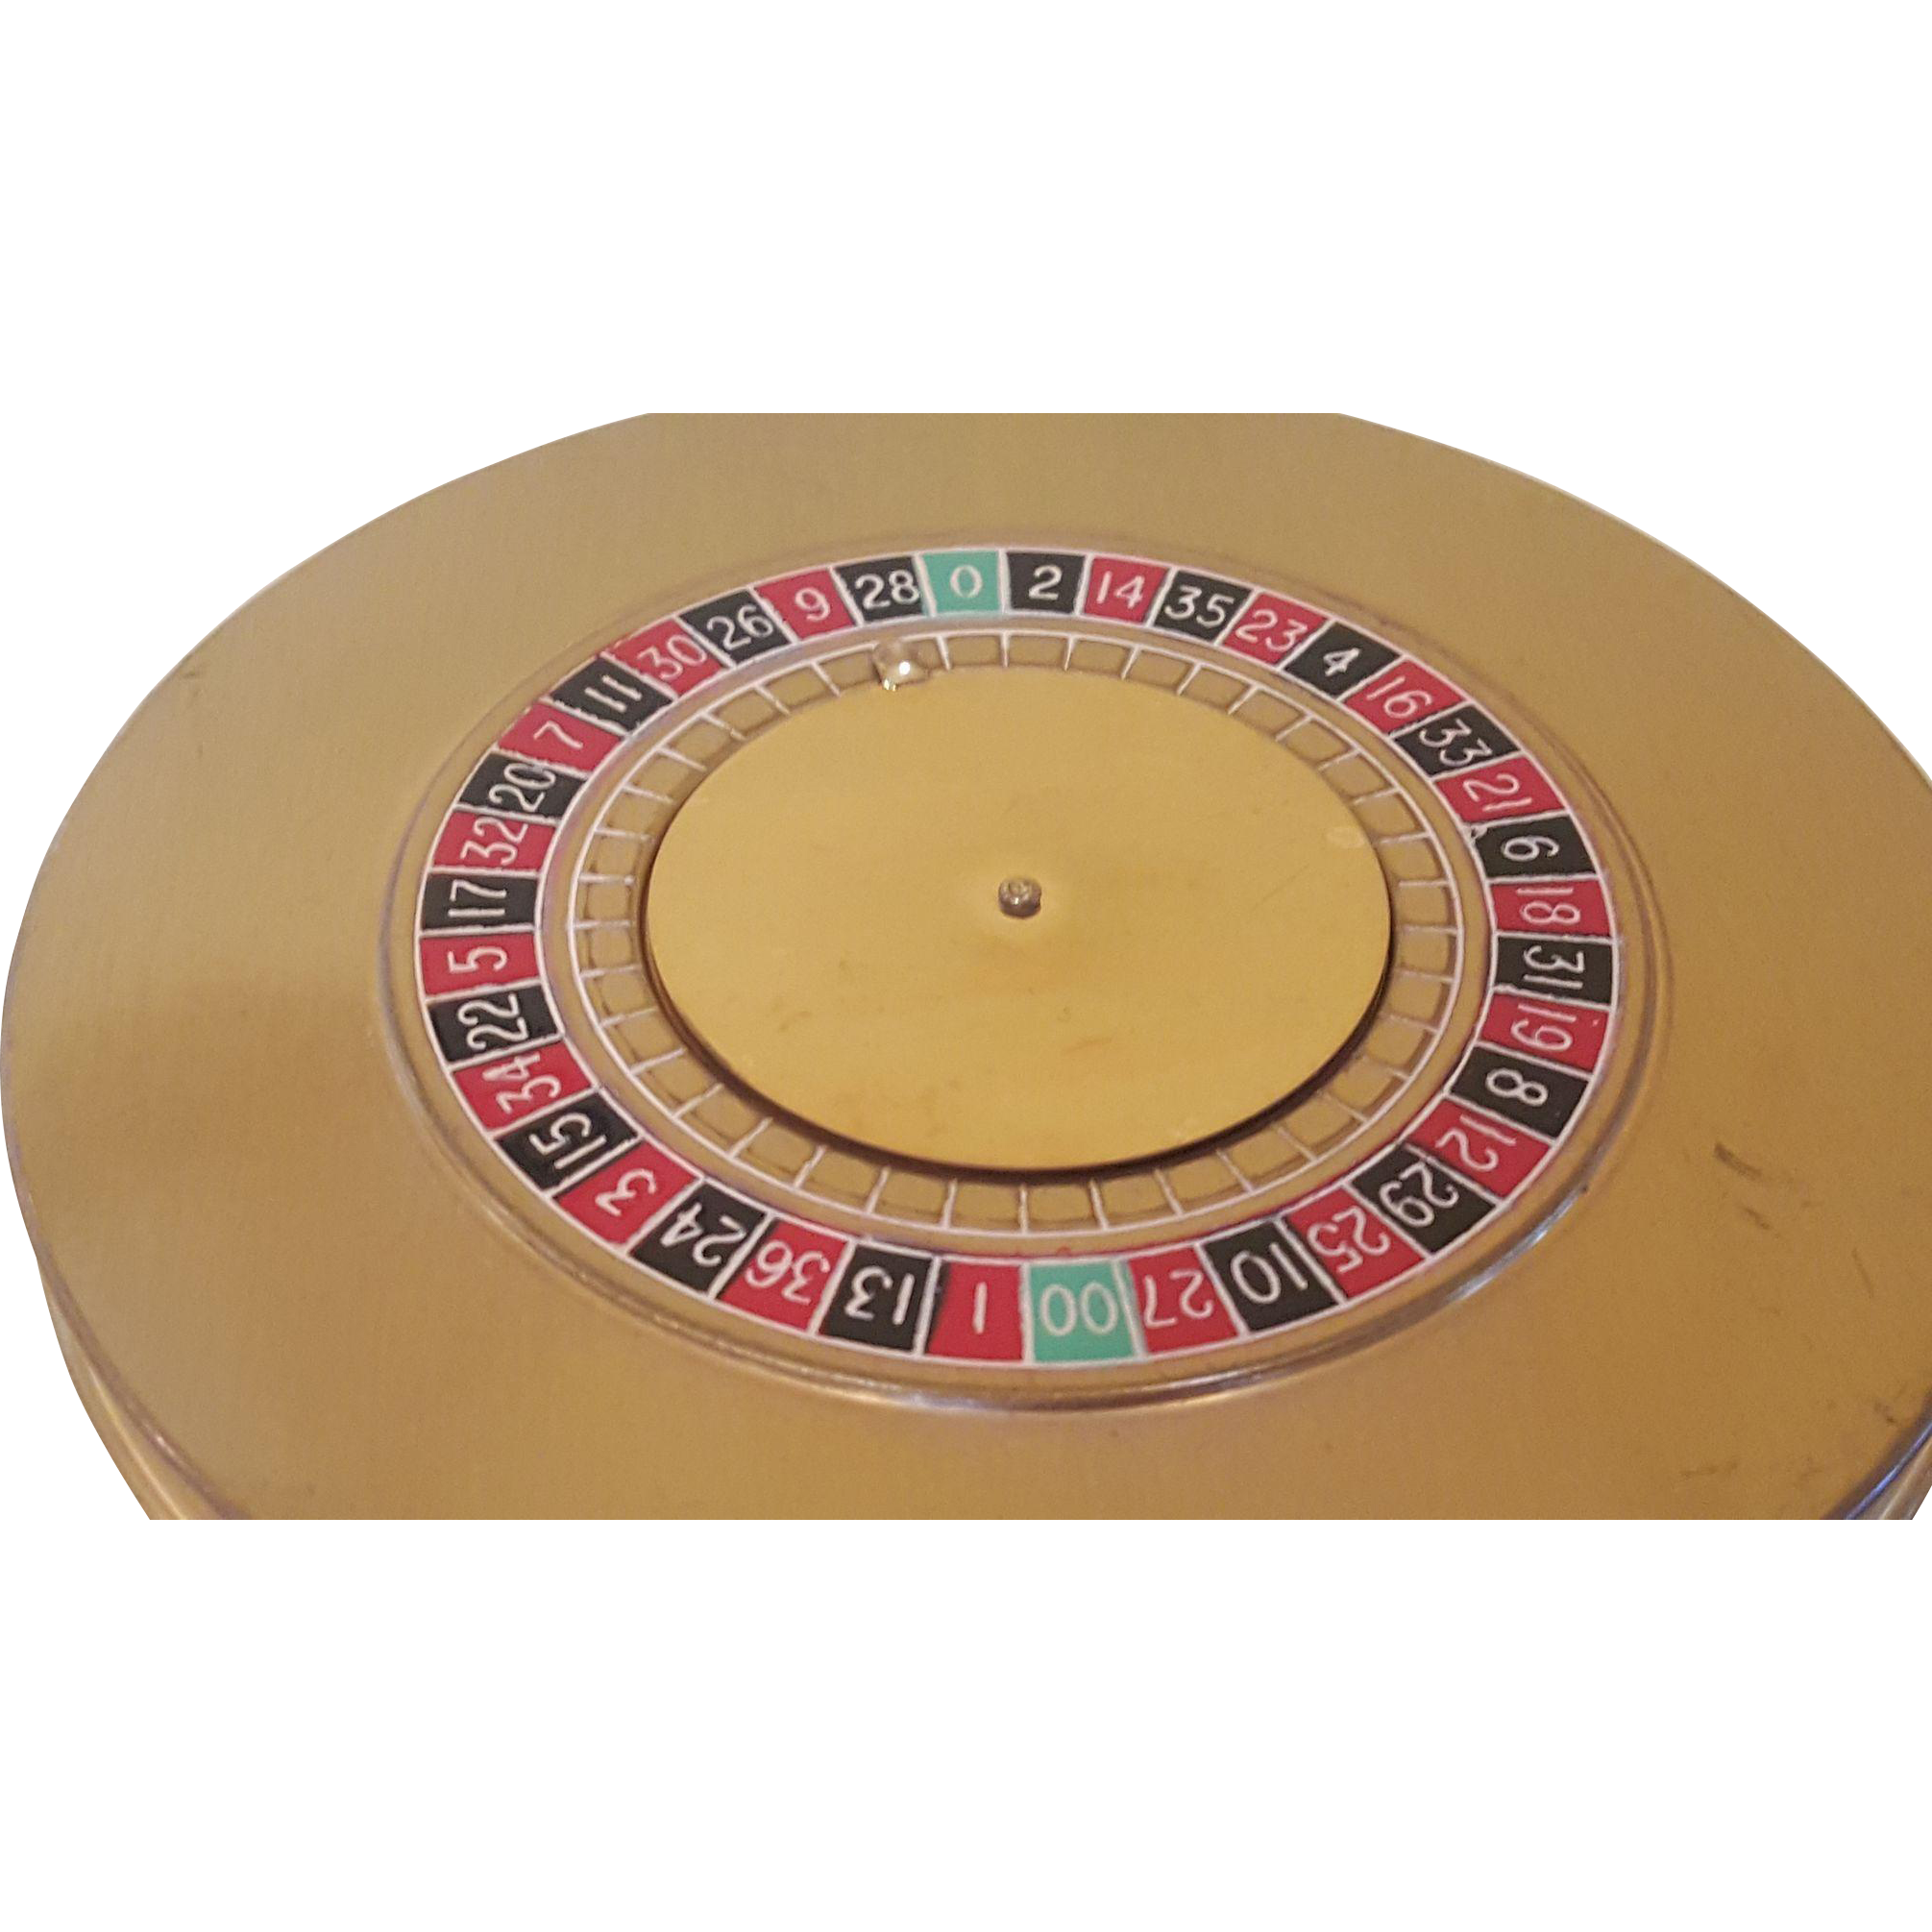 vintage majestic roulette wheel compact novelty book item. Black Bedroom Furniture Sets. Home Design Ideas